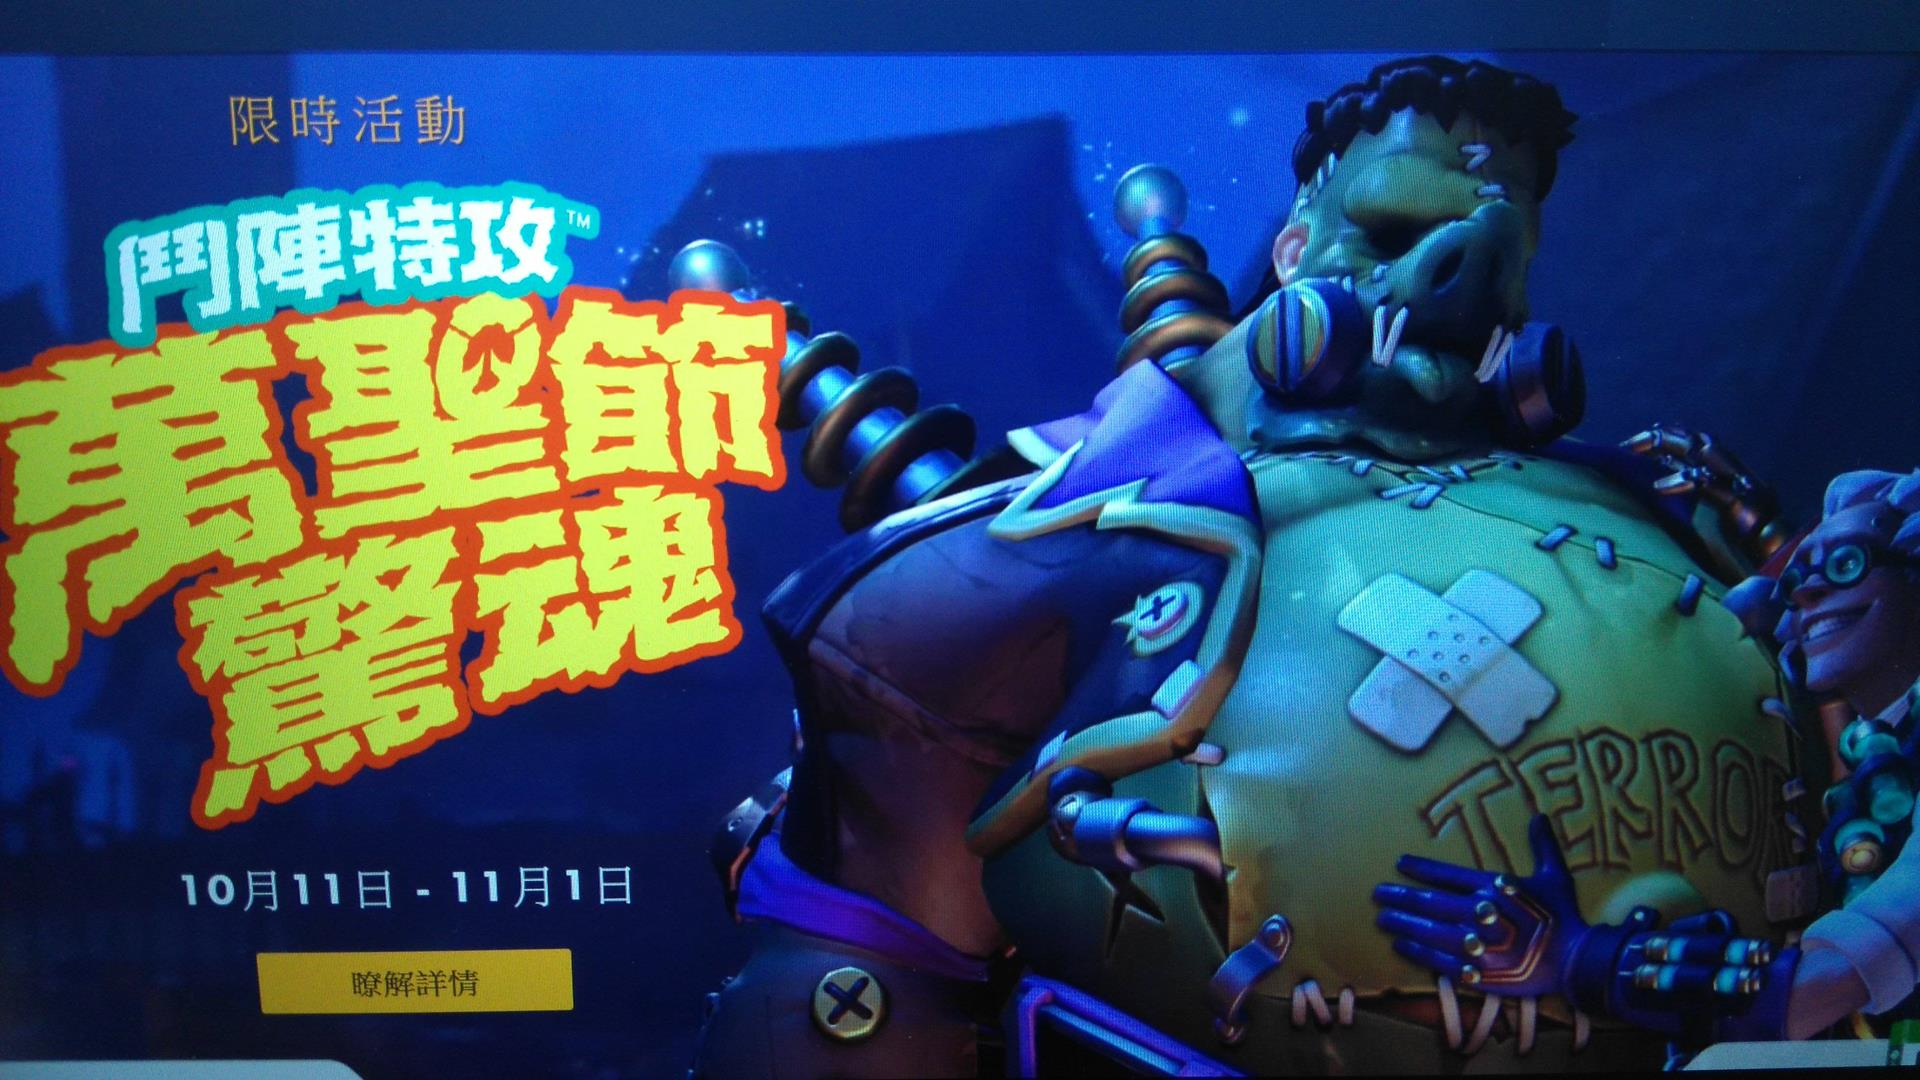 overwatch_halloween_evetn_taiwan_leak_capture_1